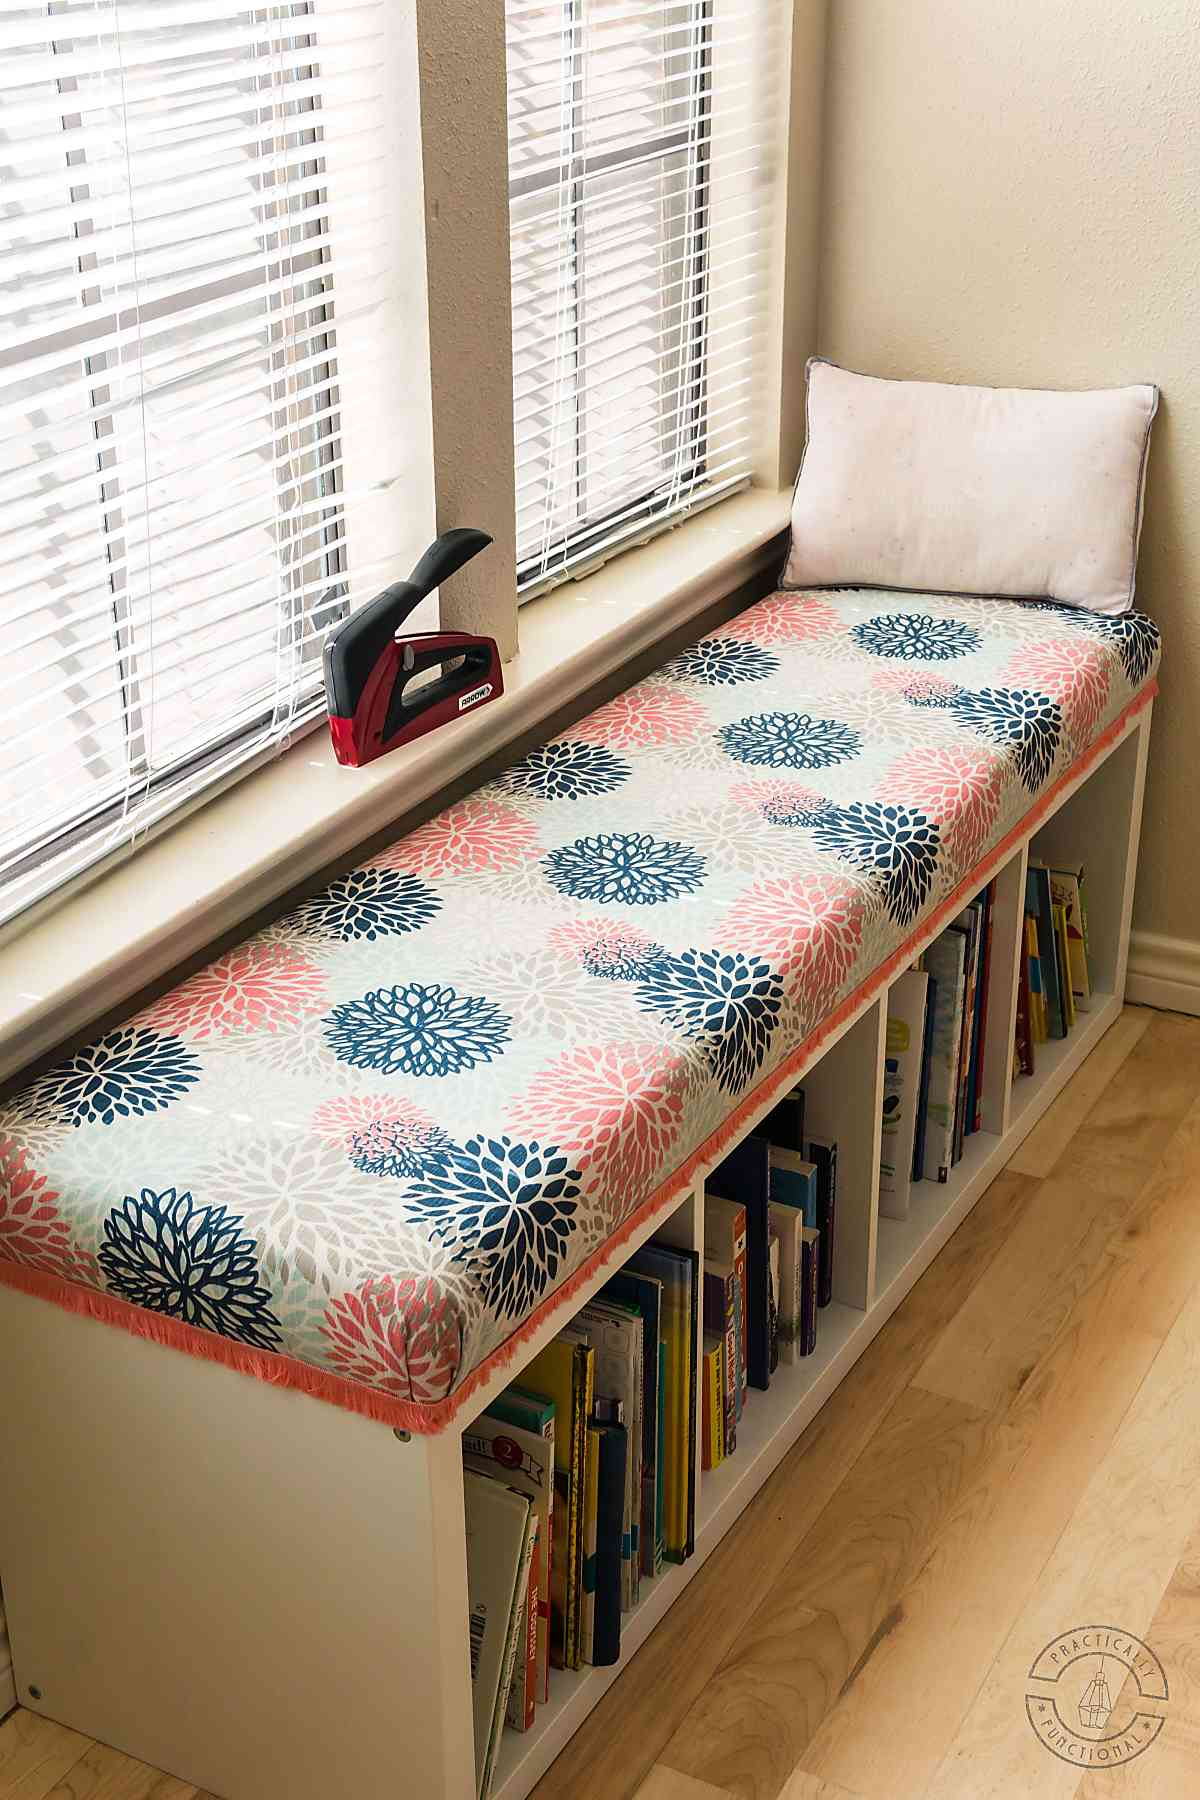 Diy Bench Seat Cushion Upholster A Cushion Without Sewing